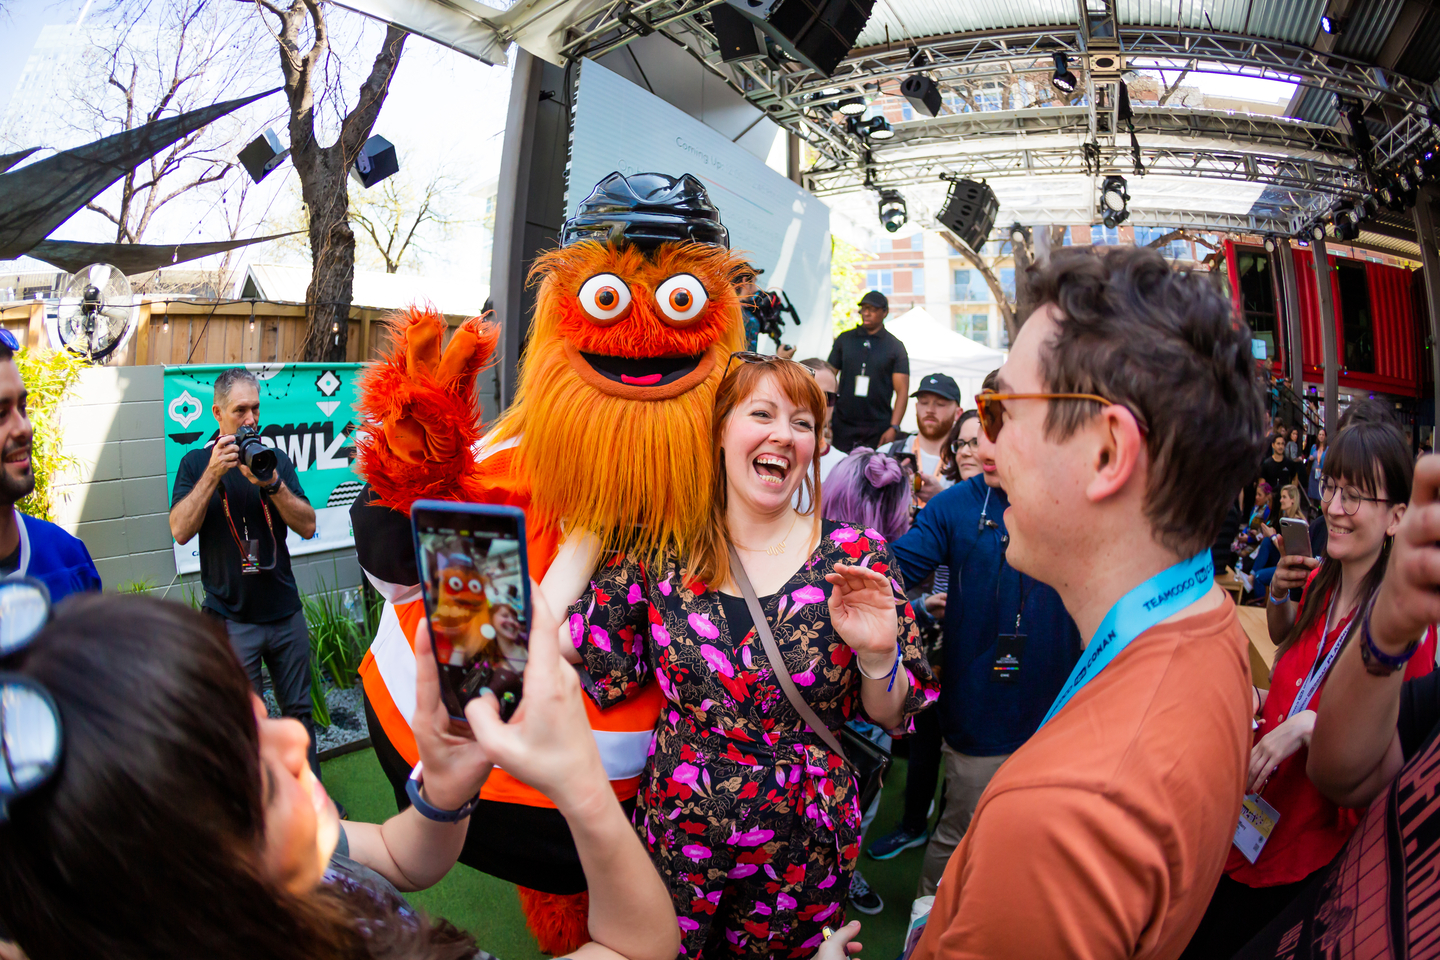 Gritty at the Comcast NBCUniversal House - Photo by Aaron Rogosin